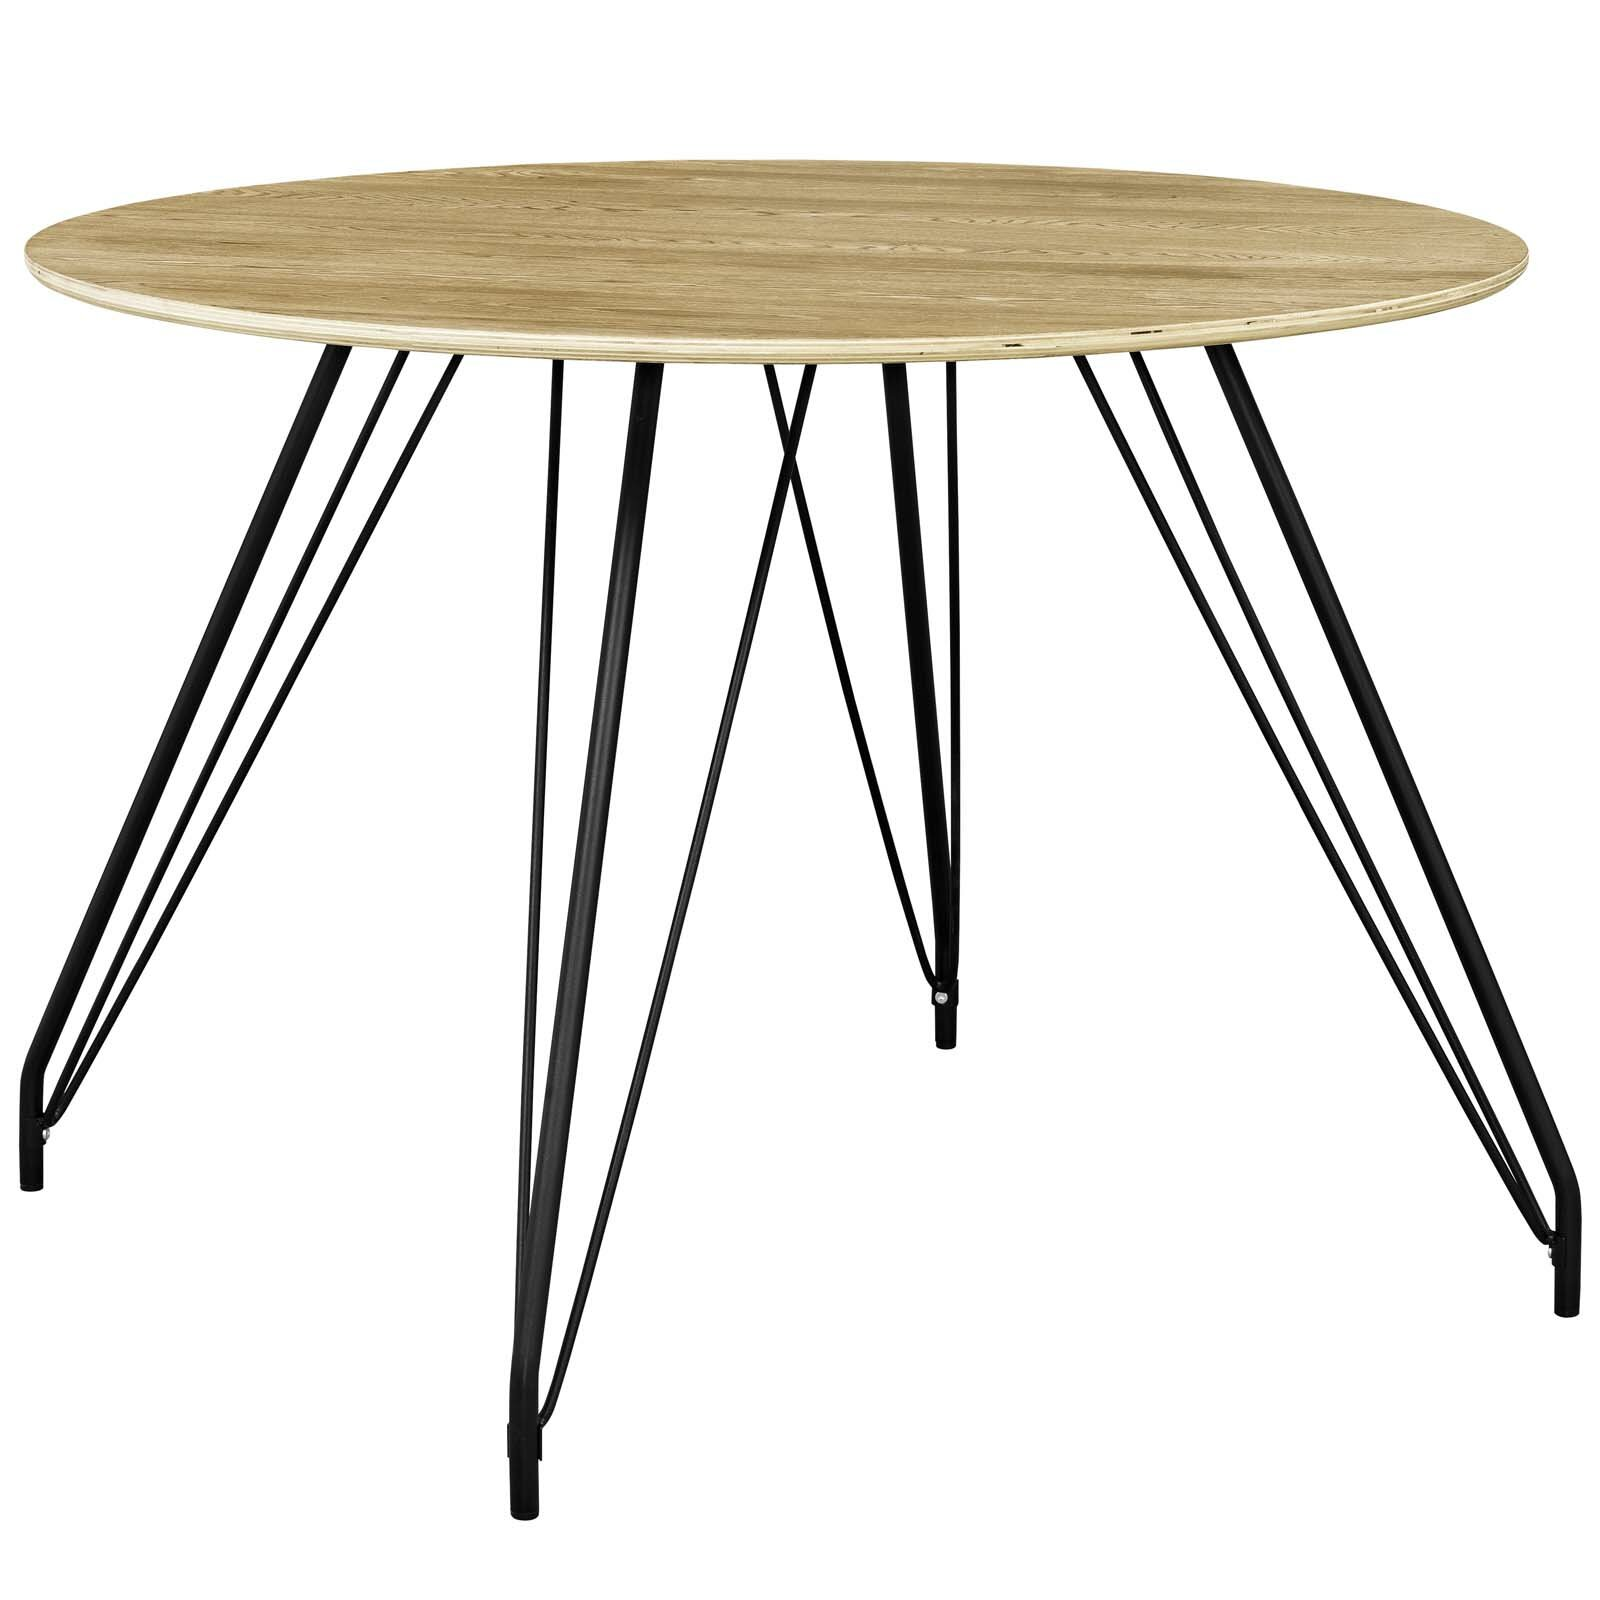 Foundry select cayman circular dining table wayfair